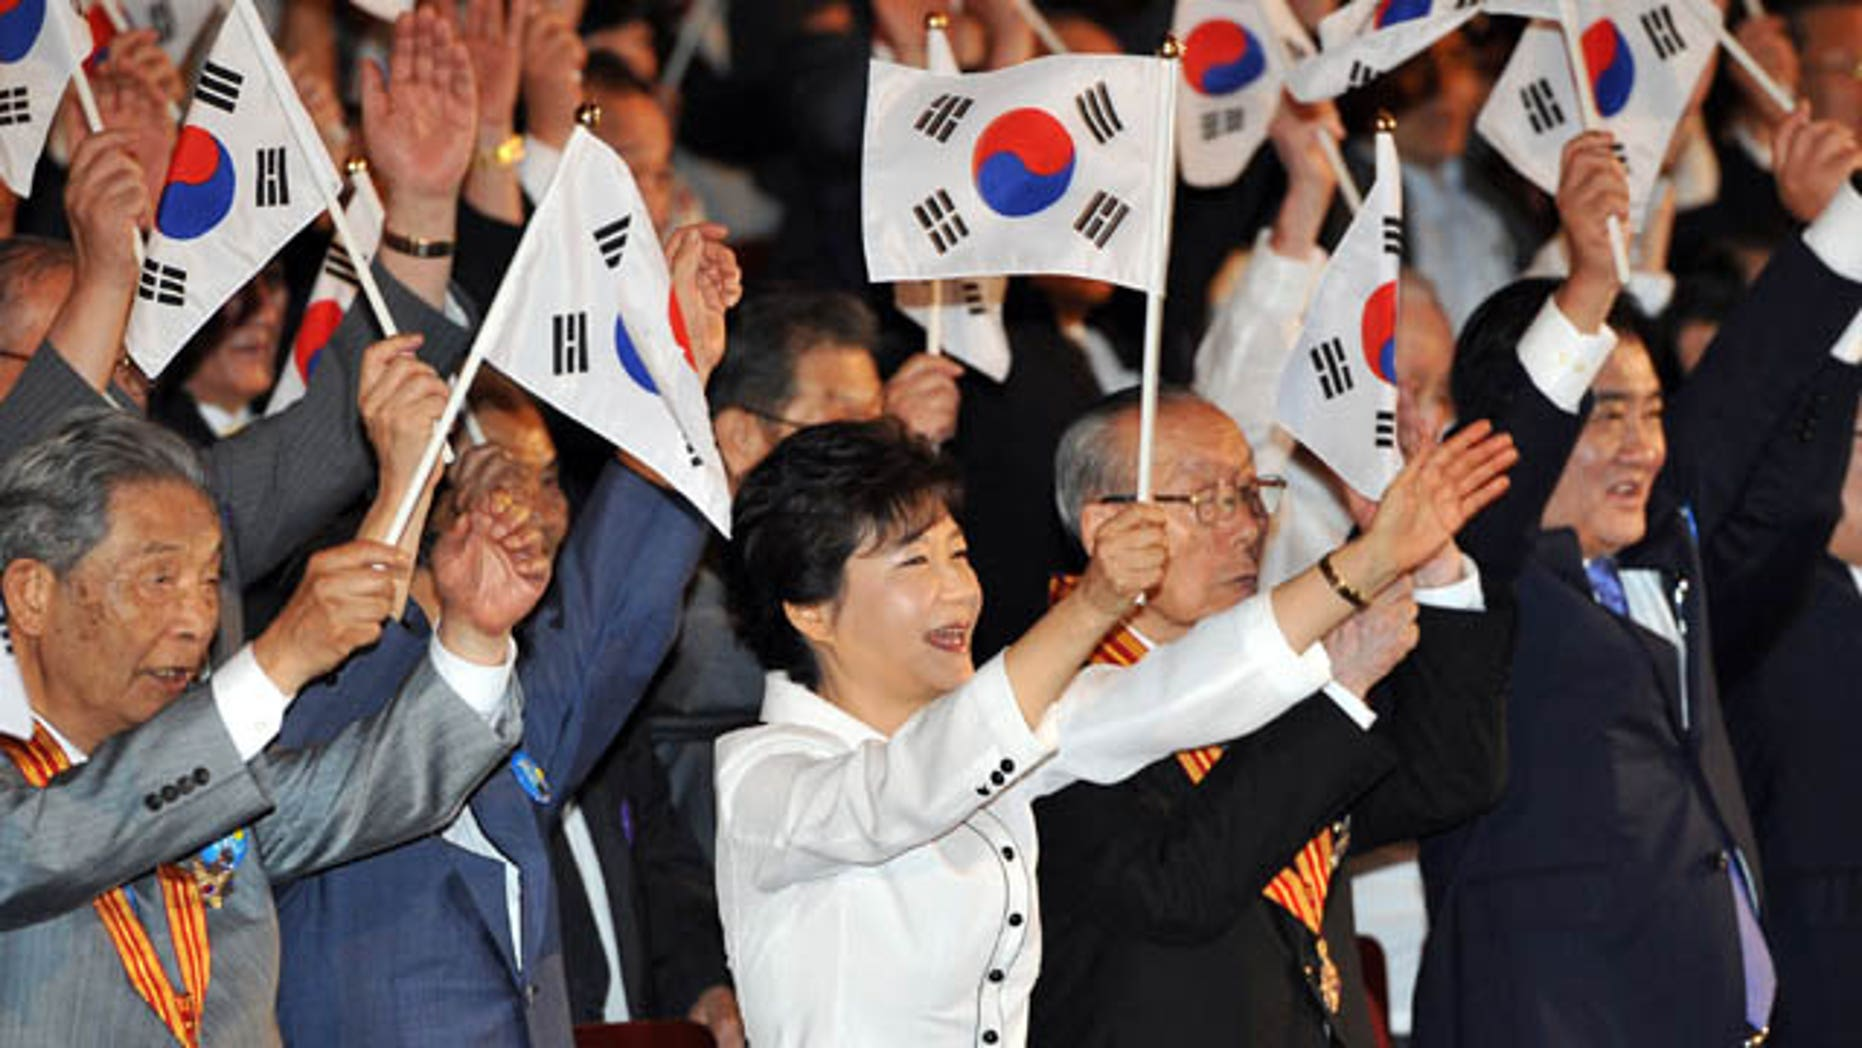 August 15, 2013: South Korean President Park Geun-hye gives three cheers for the country during a ceremony marking the 68th anniversary of liberation from Japanese colonial rule in Seoul. (AP Photo/Jung Yeon-je, Pool)